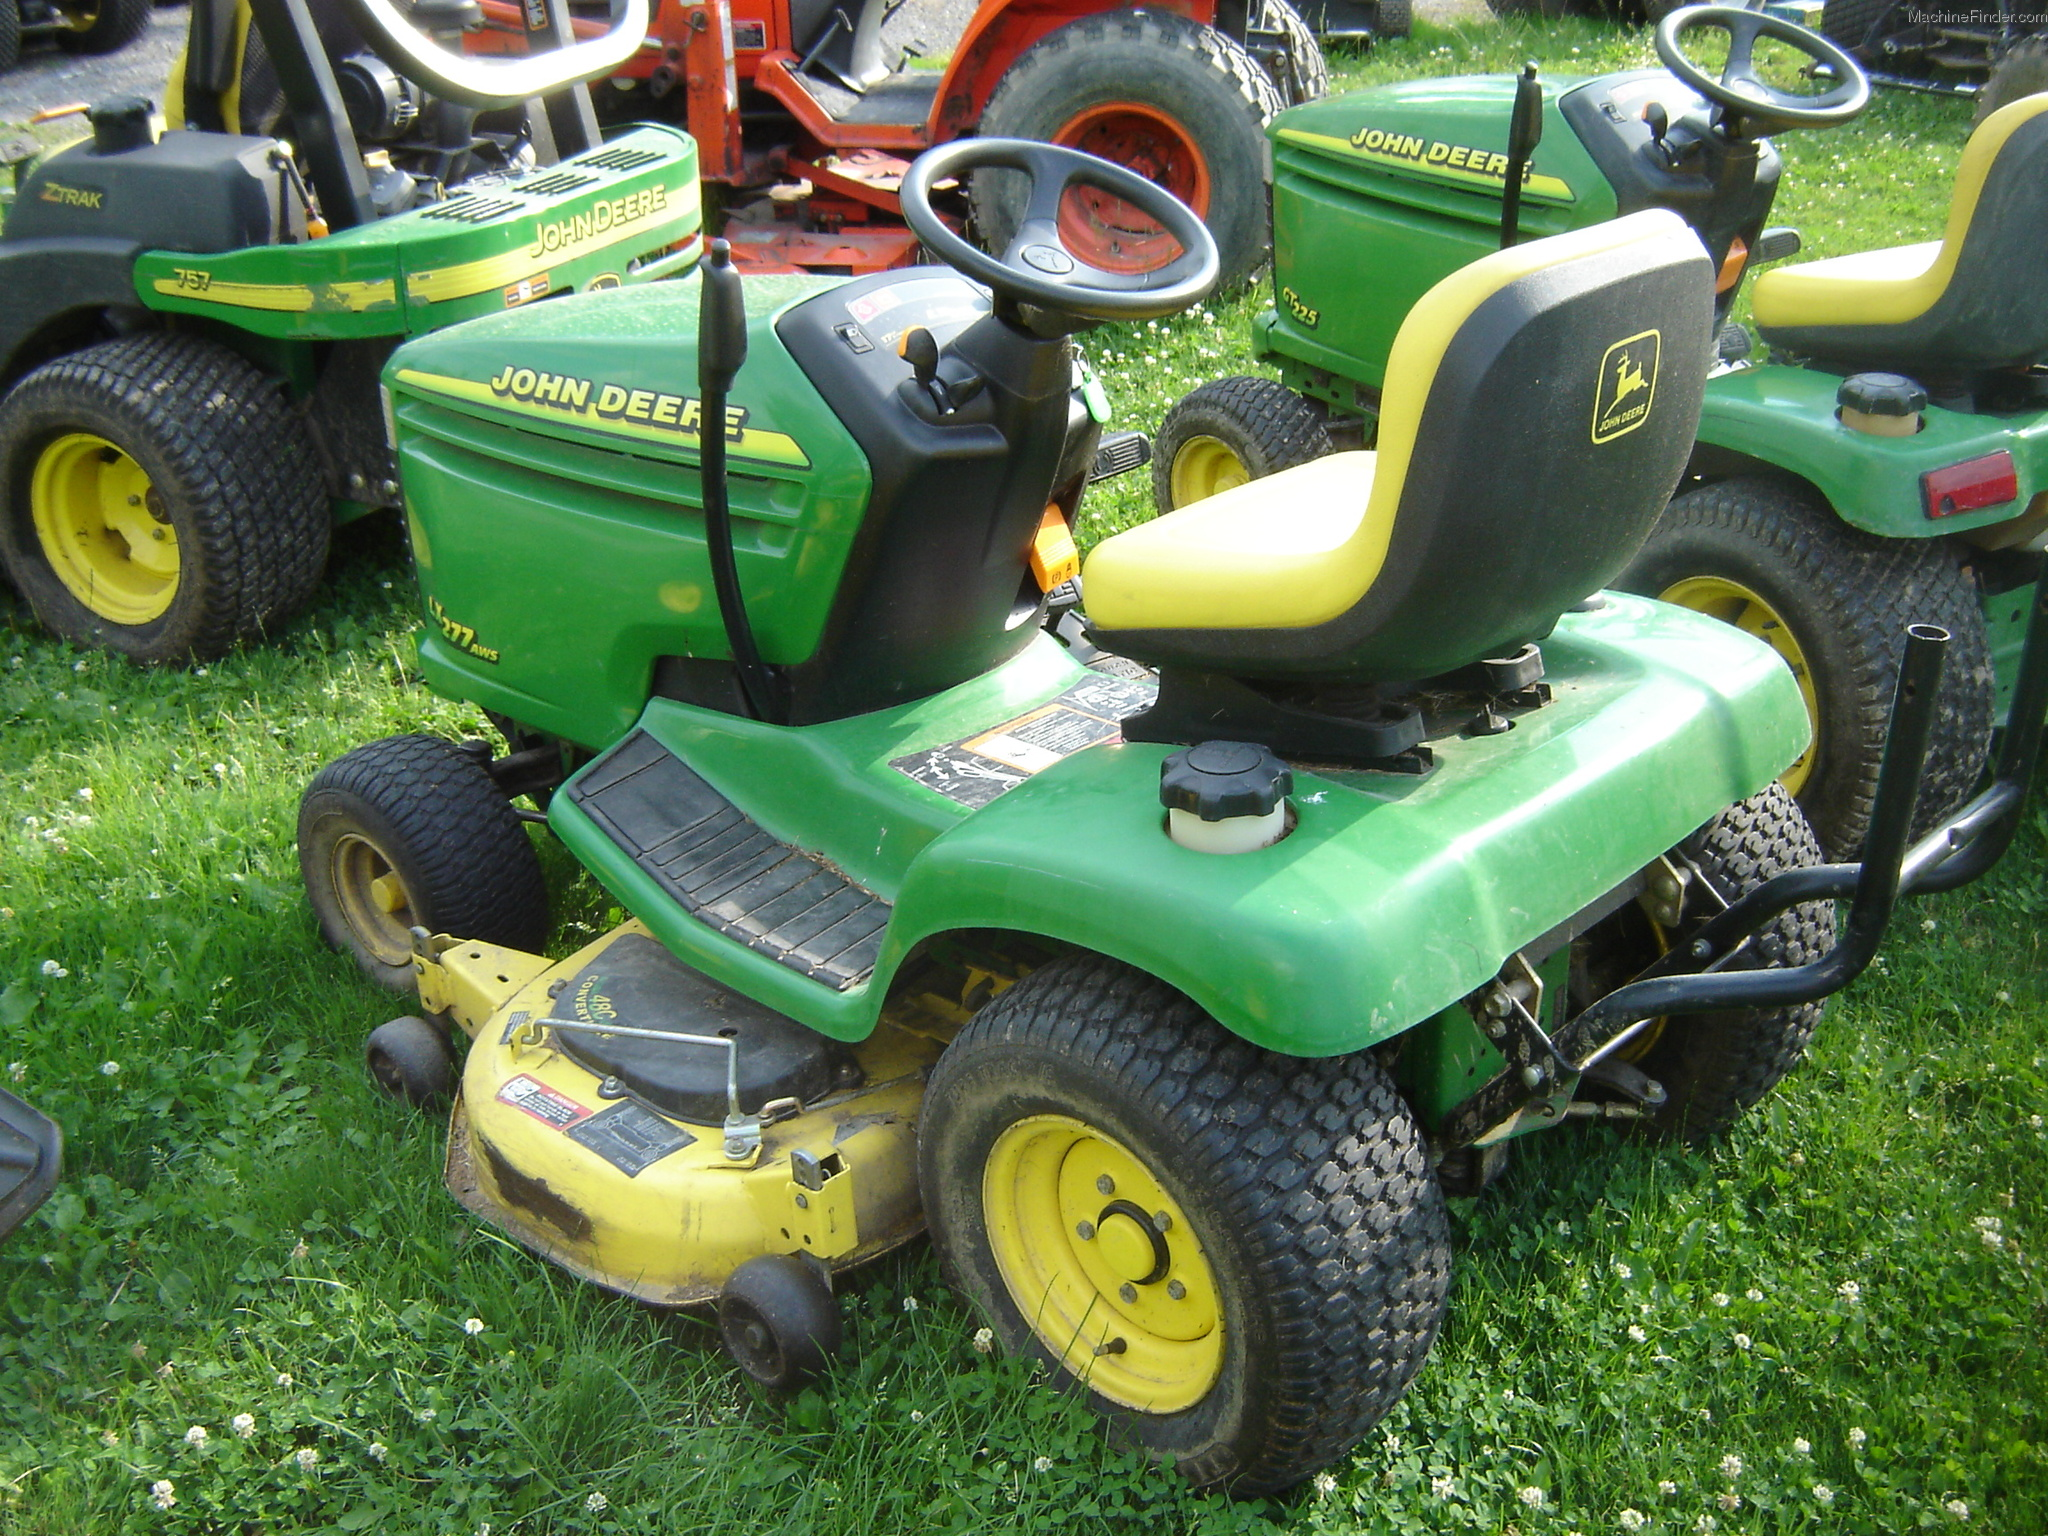 2000 John Deere Lx277 Lawn Amp Garden And Commercial Mowing